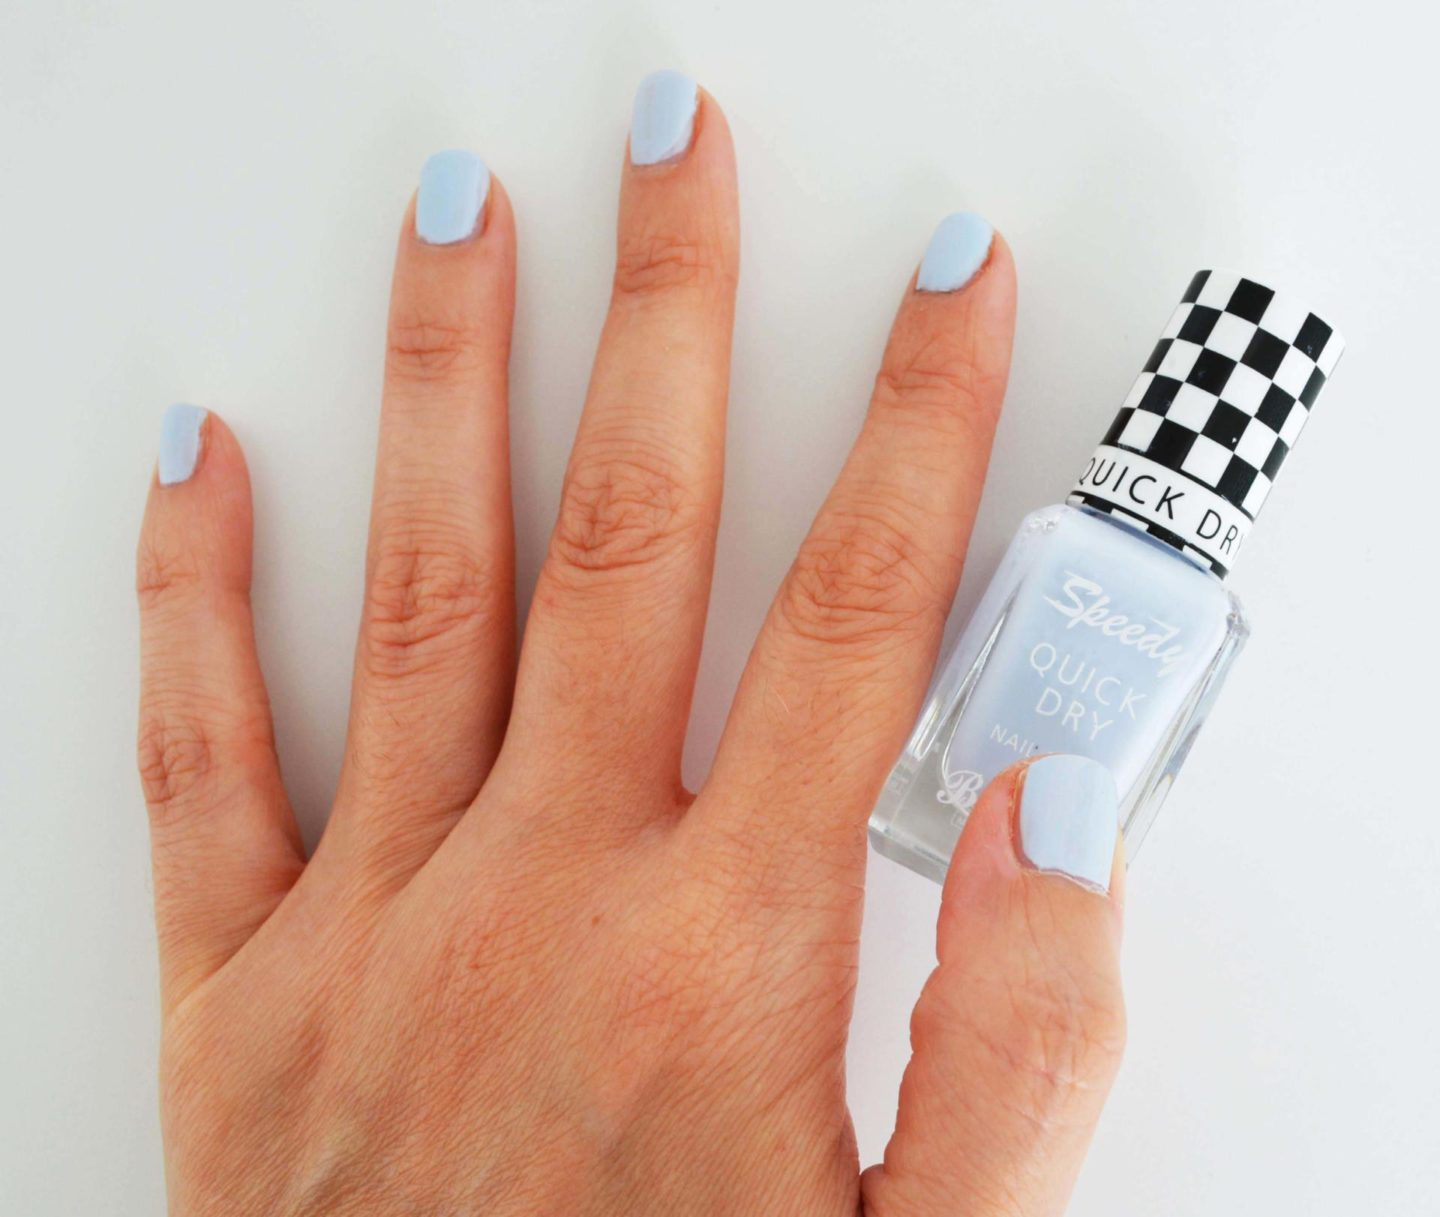 Barry M Speedy Quick Dry Nail Paint in Eat My Dust